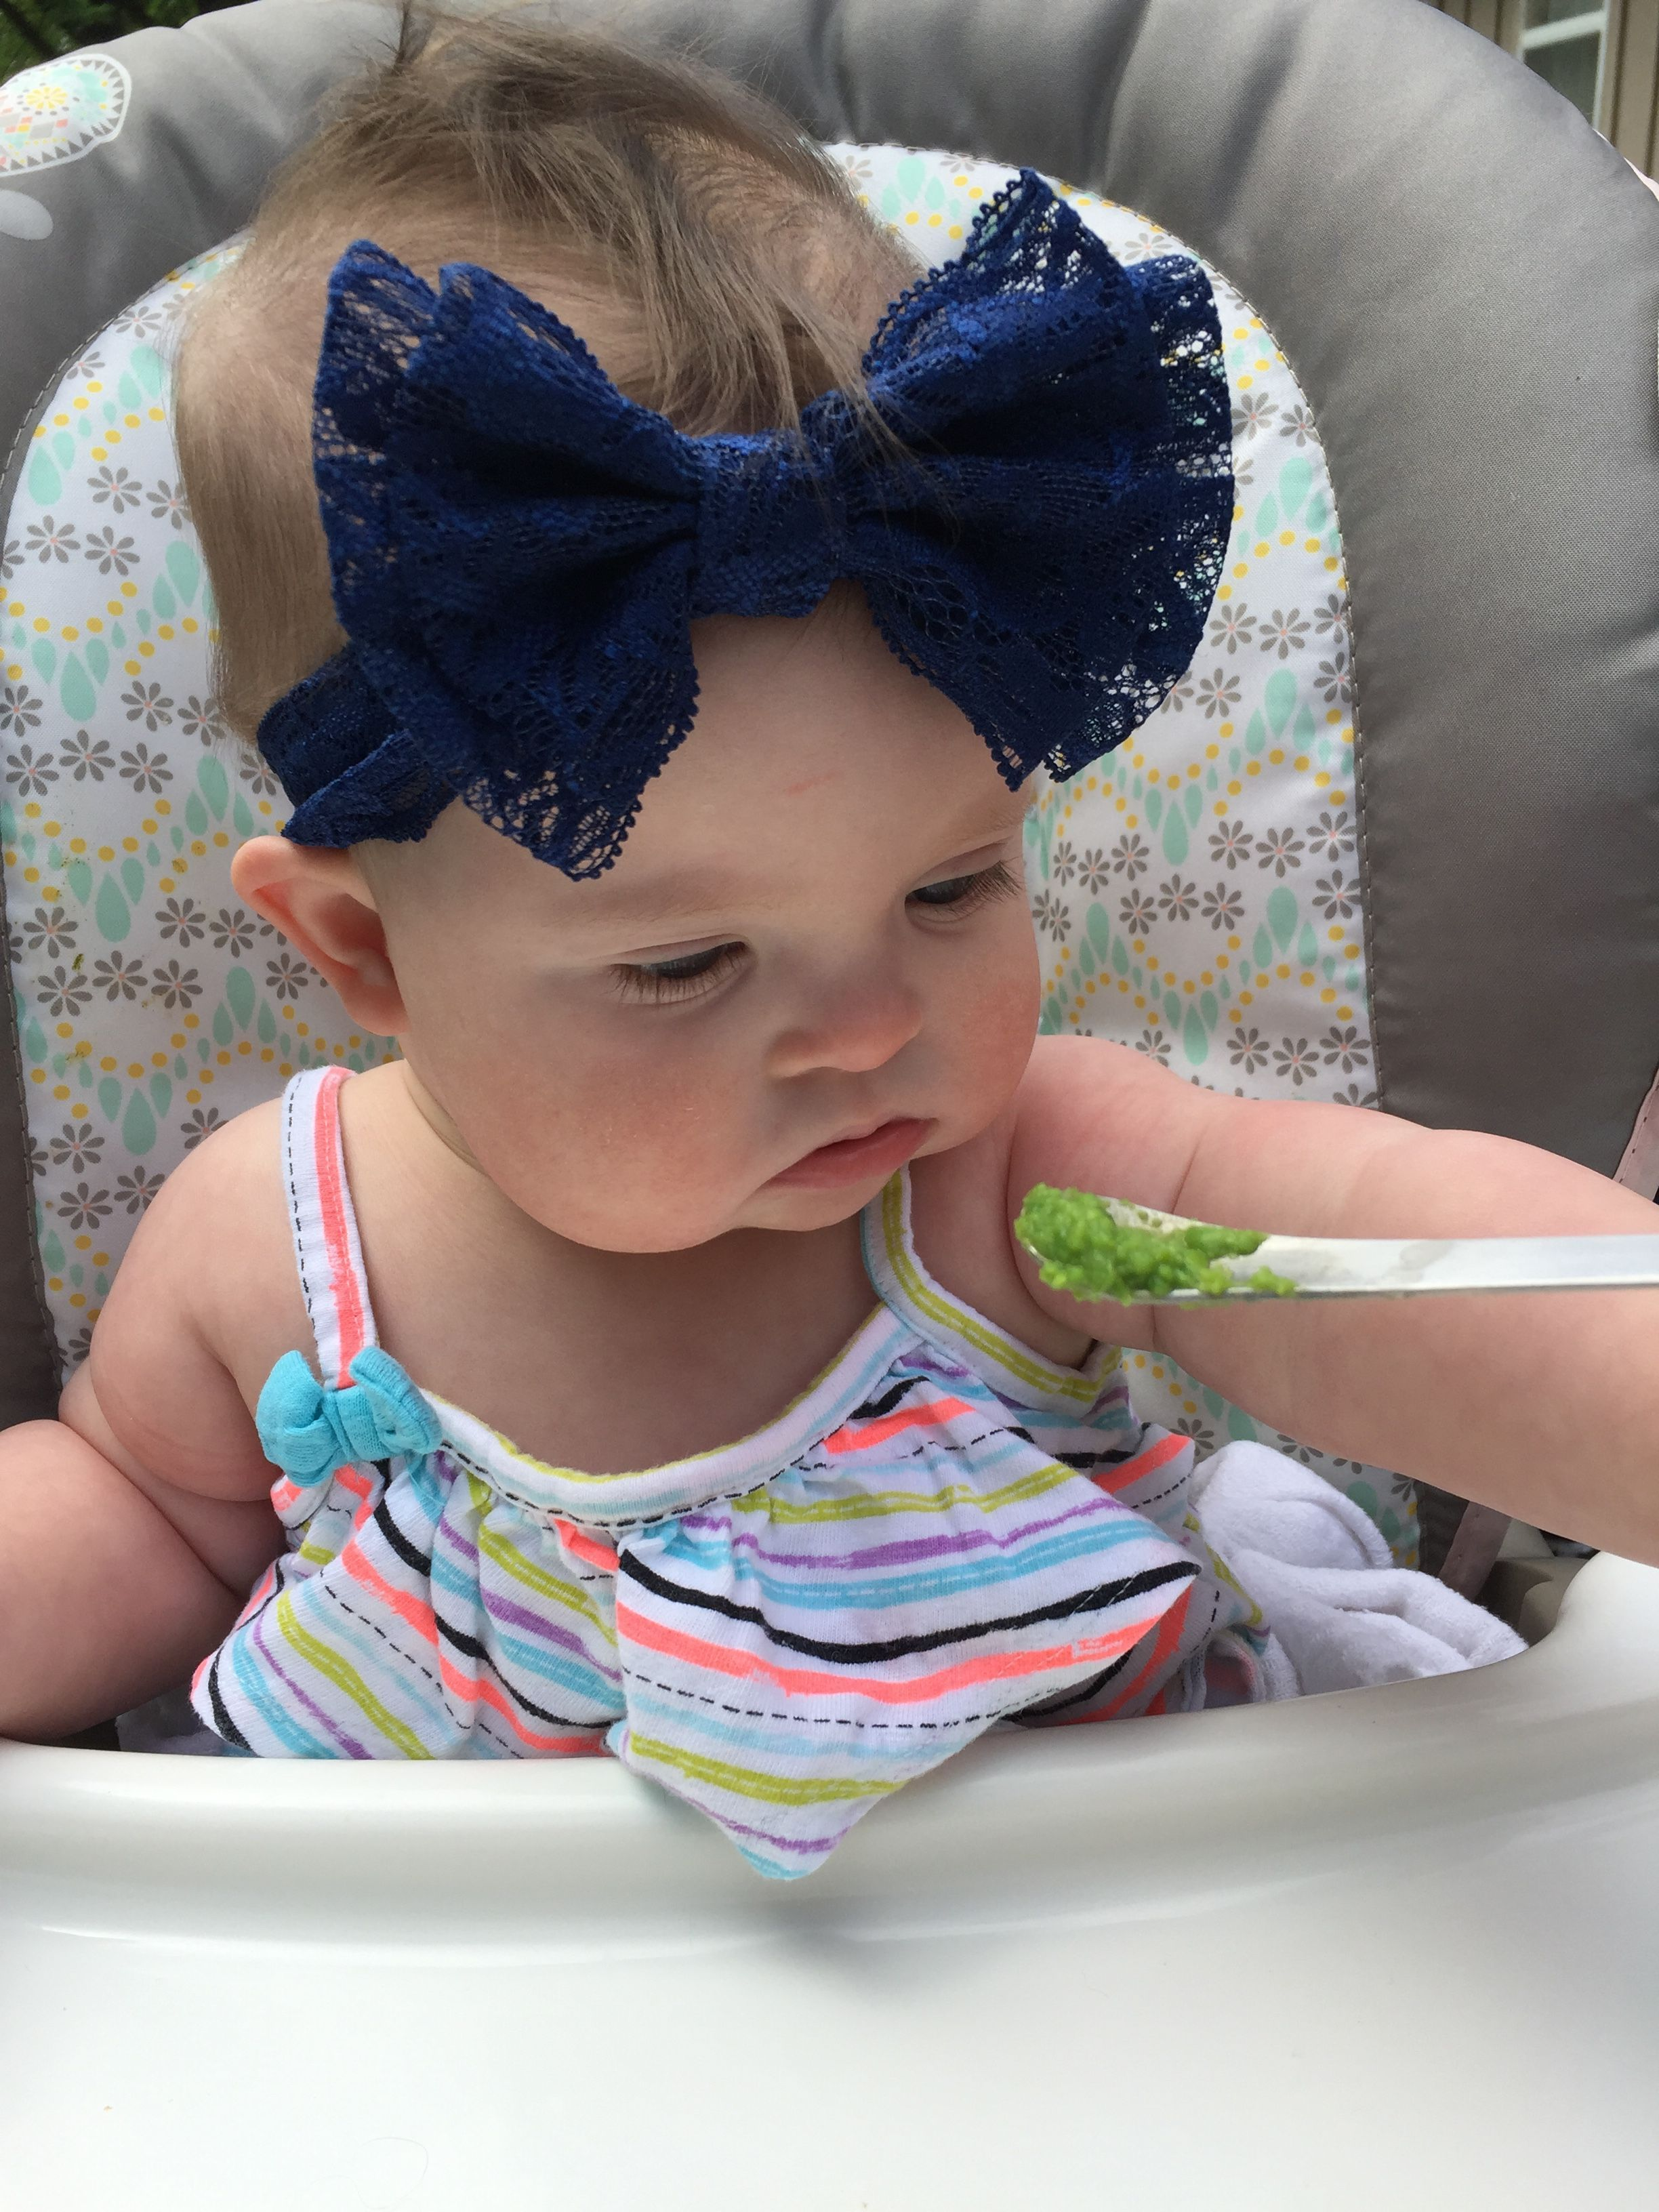 Registering for our baby with Down syndrome Part IV Lunch Time